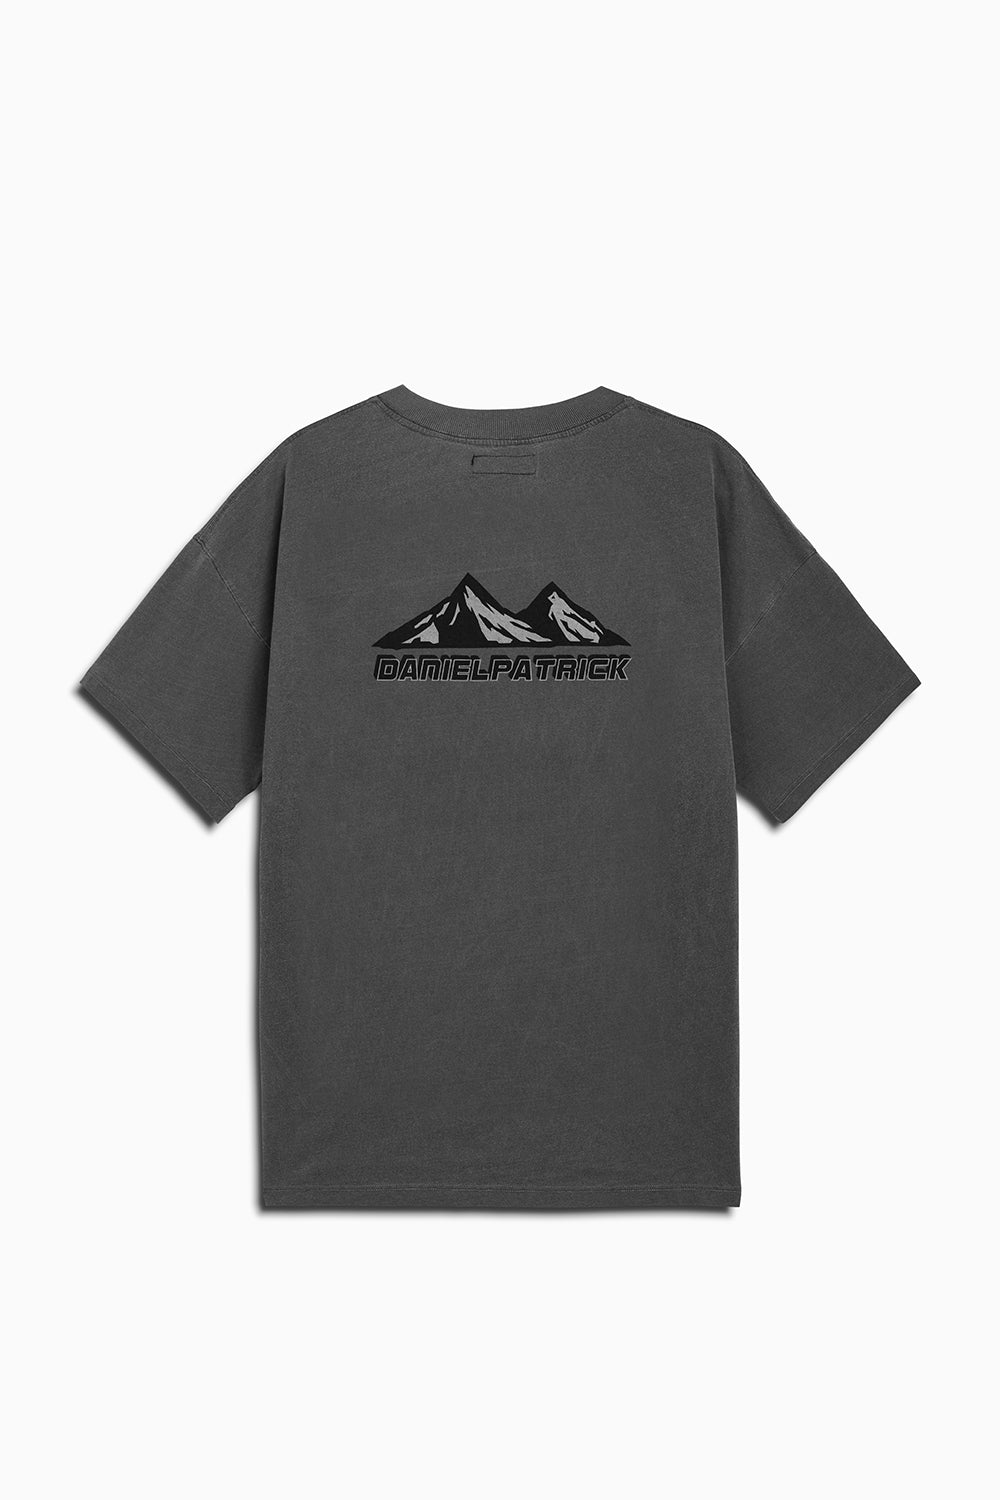 moving mountains tee in vintage black by daniel patrick